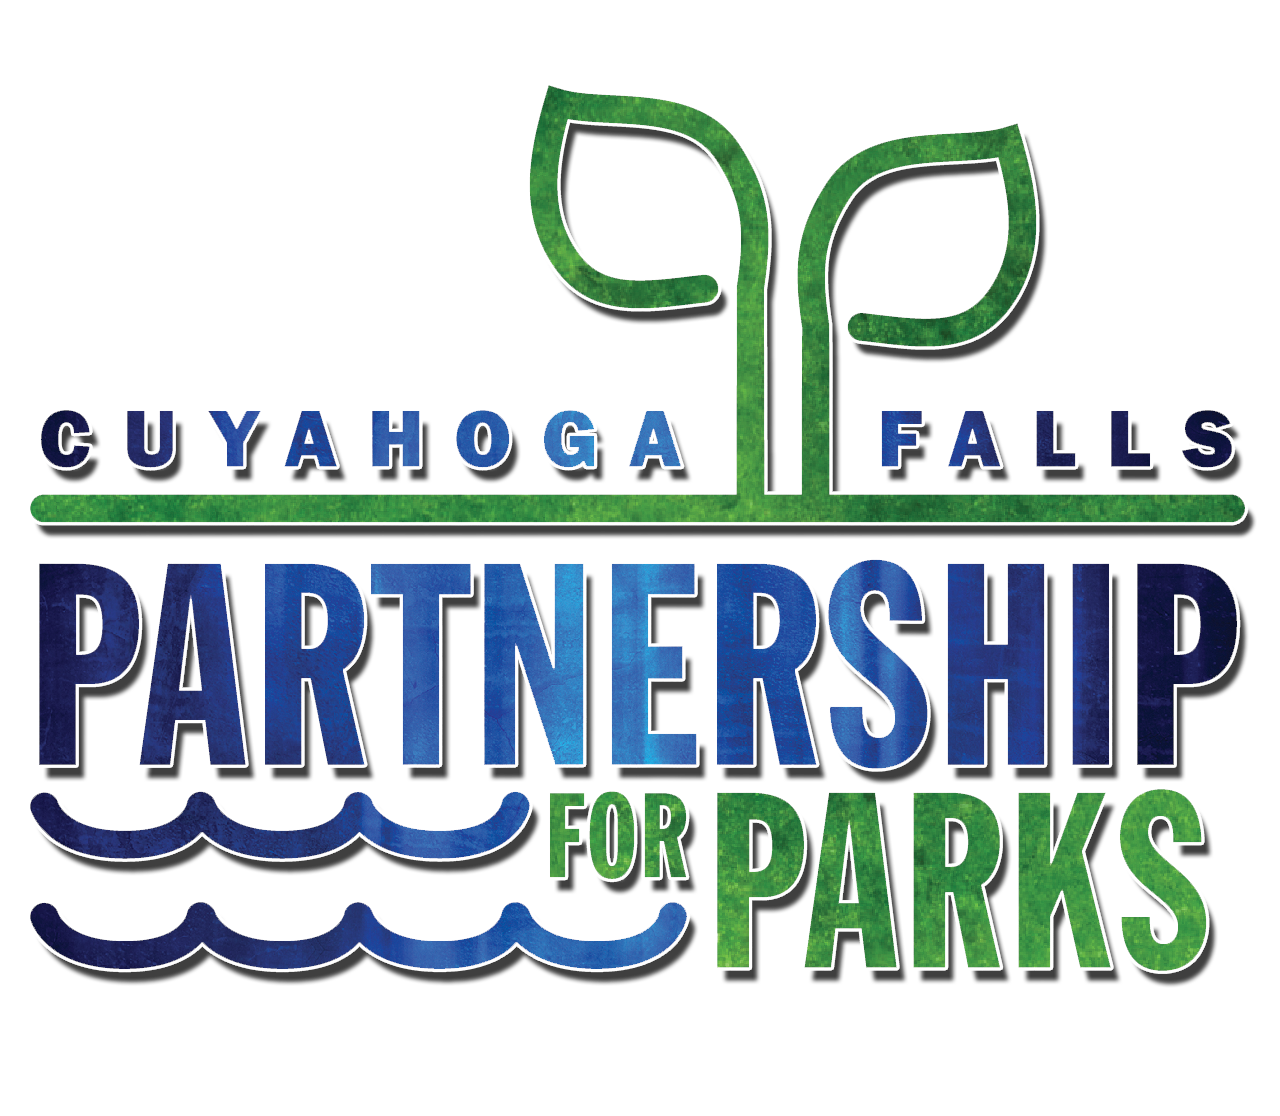 Cuyahoga Falls Partnership for Parks